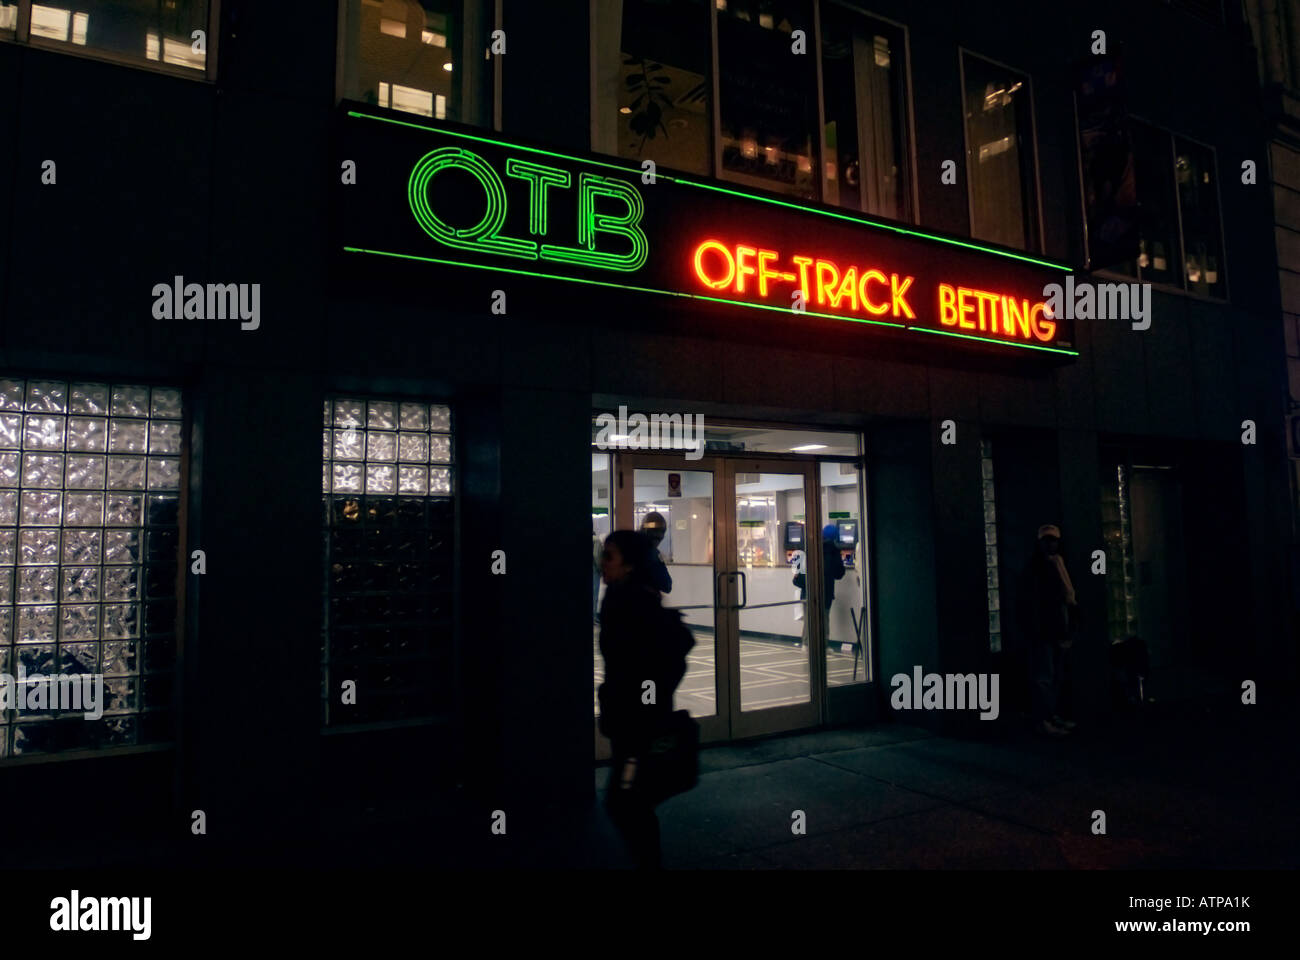 An Off Track Betting parlor in Midtown Manhattan - Stock Image